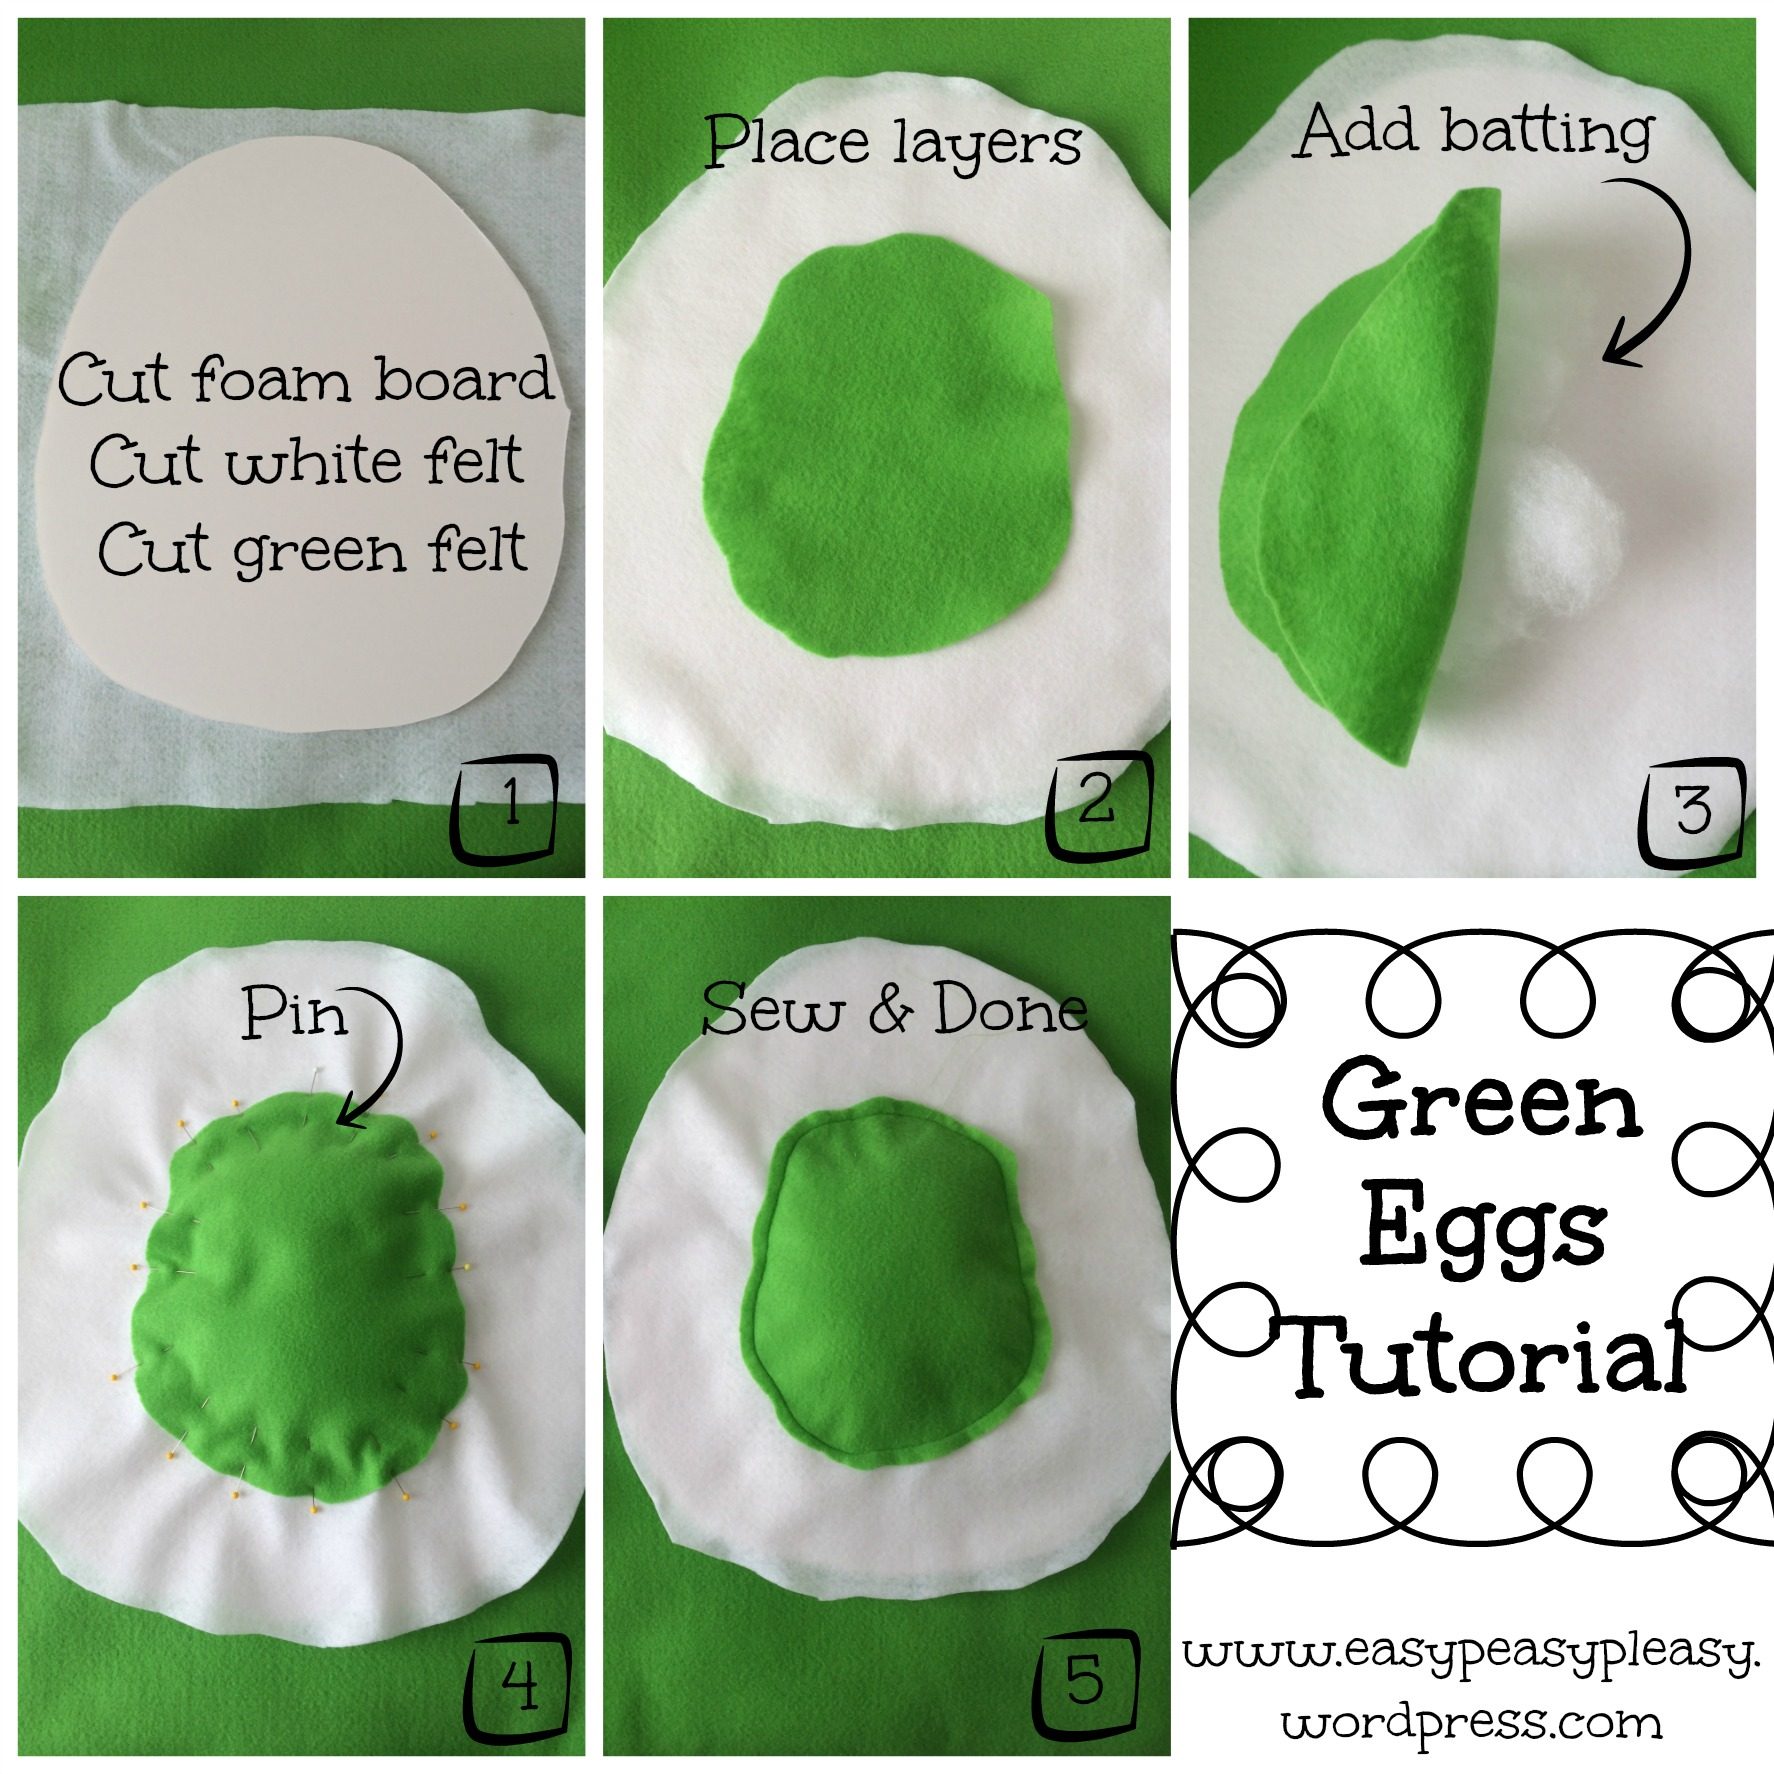 All Things Dr SeussDIY Green Eggs and Ham Costume  Easy Peasy